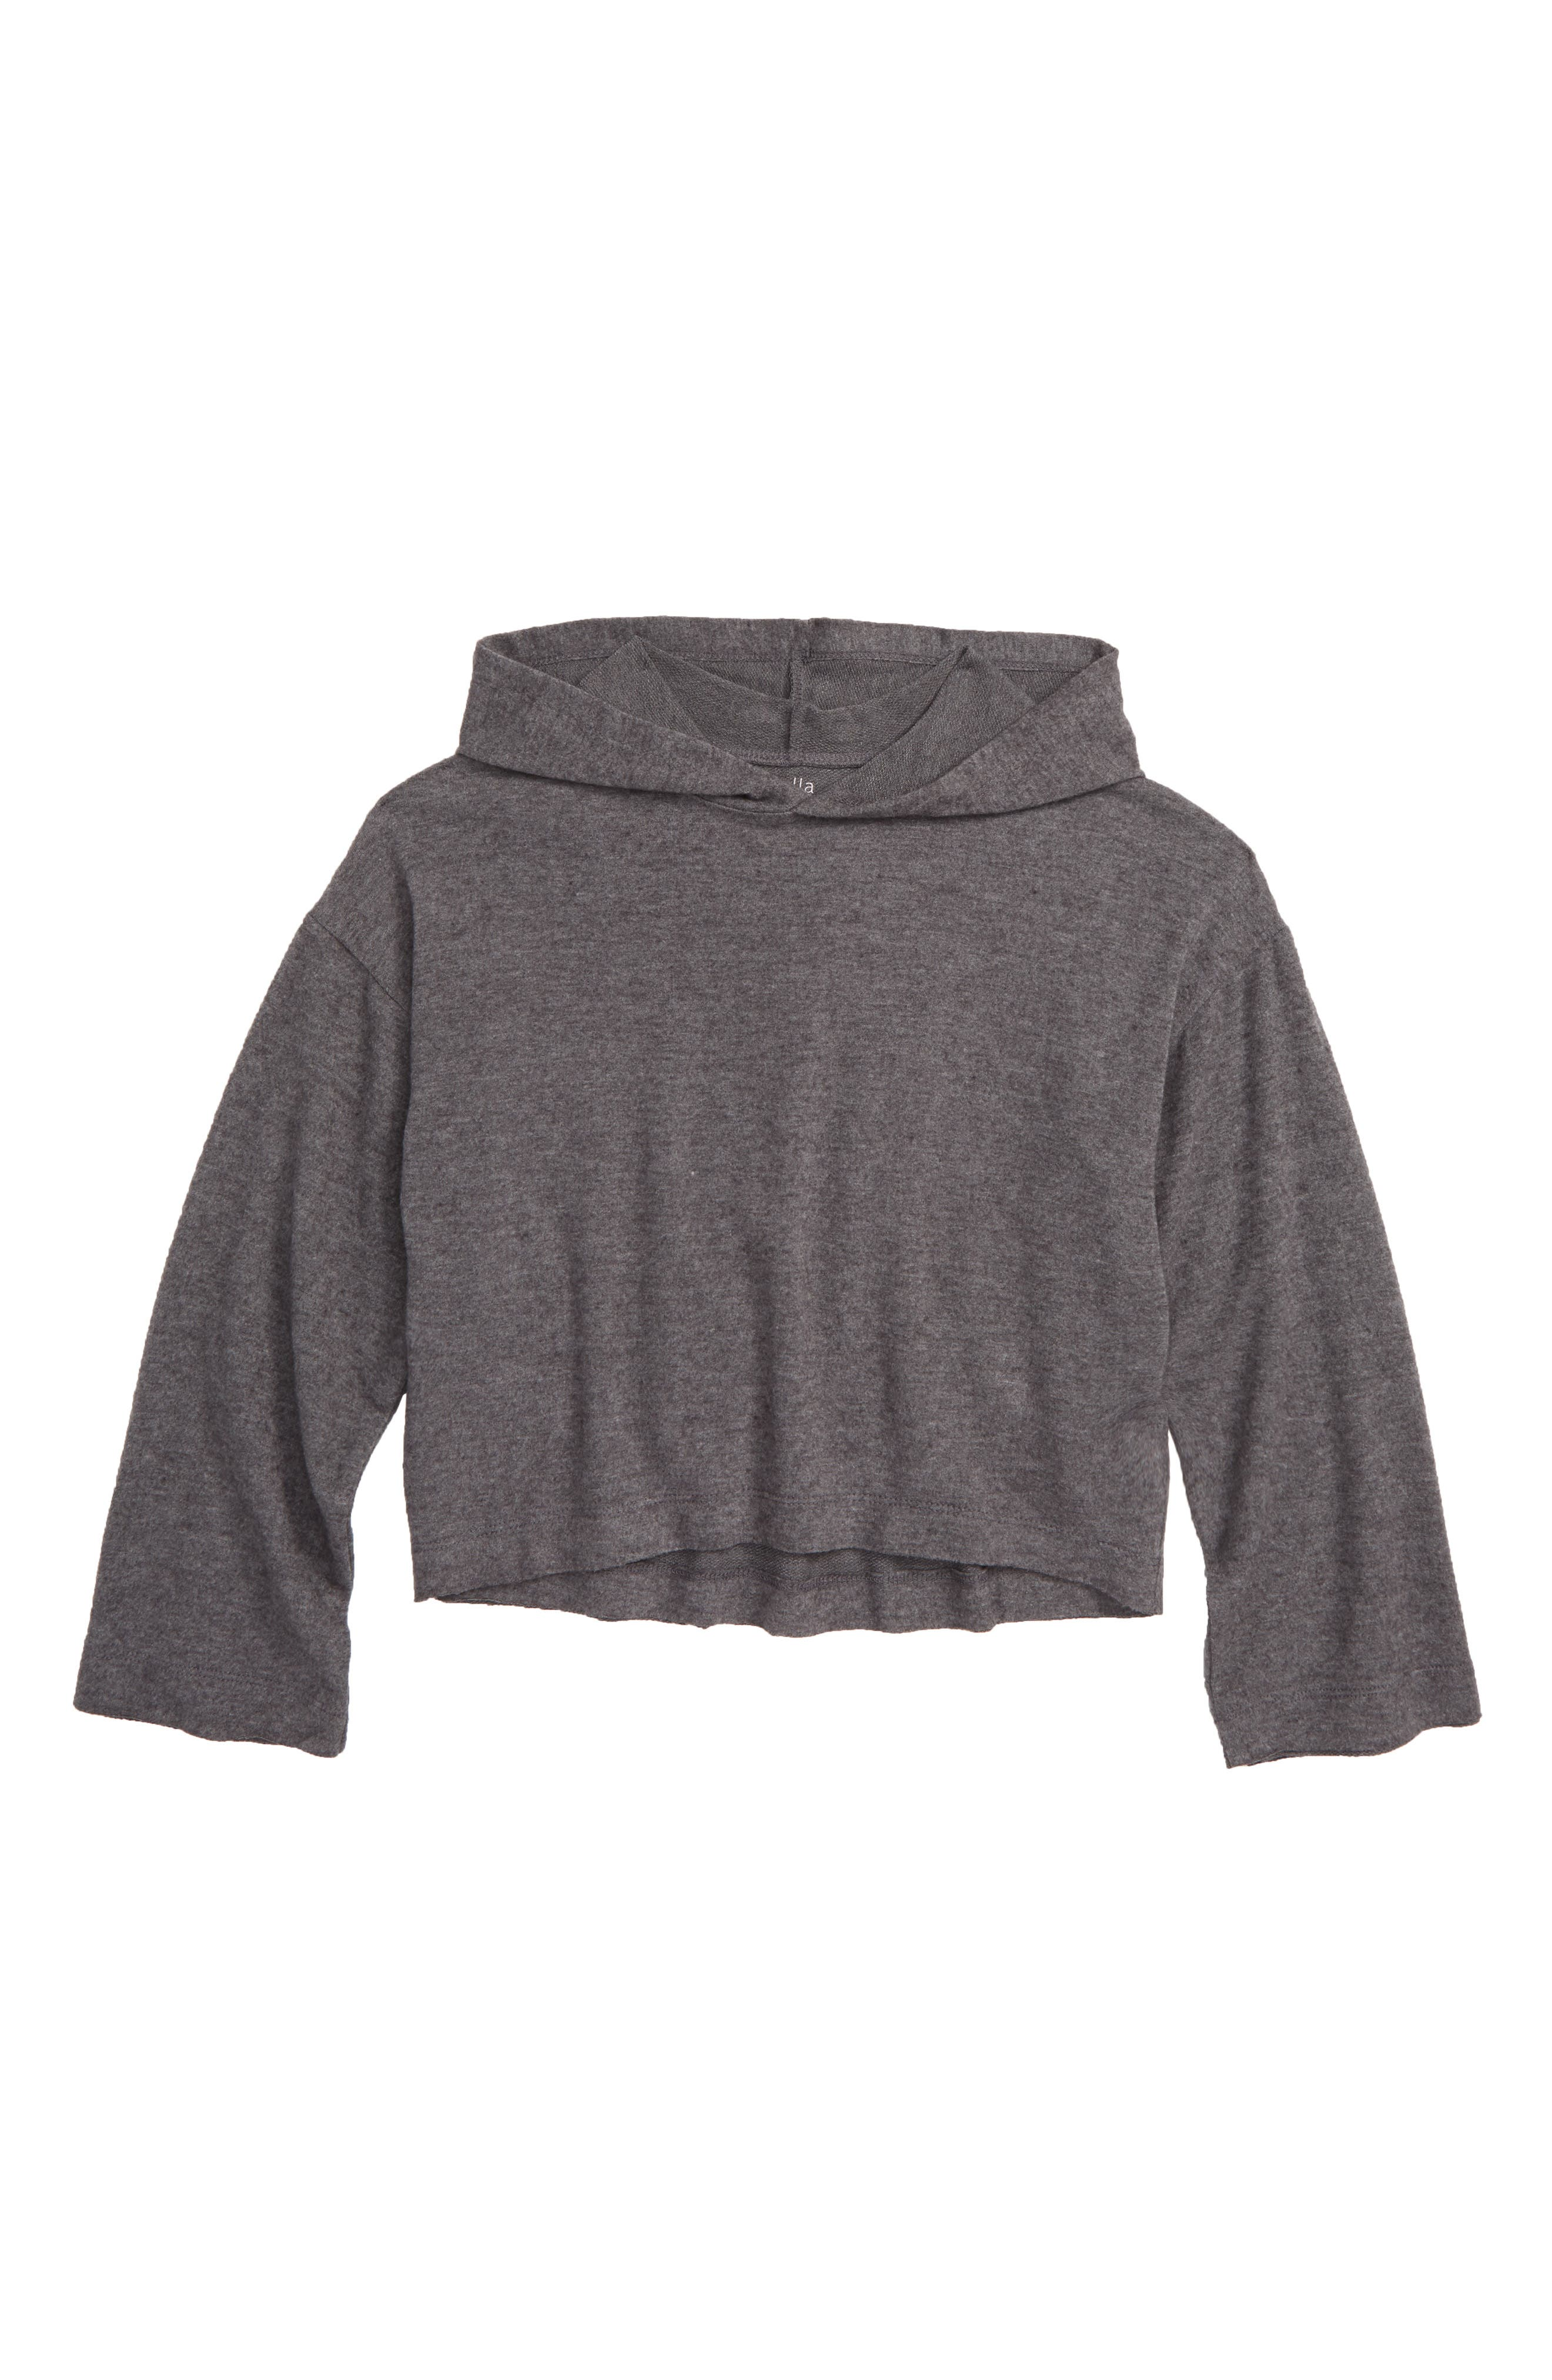 Boxy Hooded Pullover,                             Main thumbnail 1, color,                             GREY CHARCOAL HEATHER